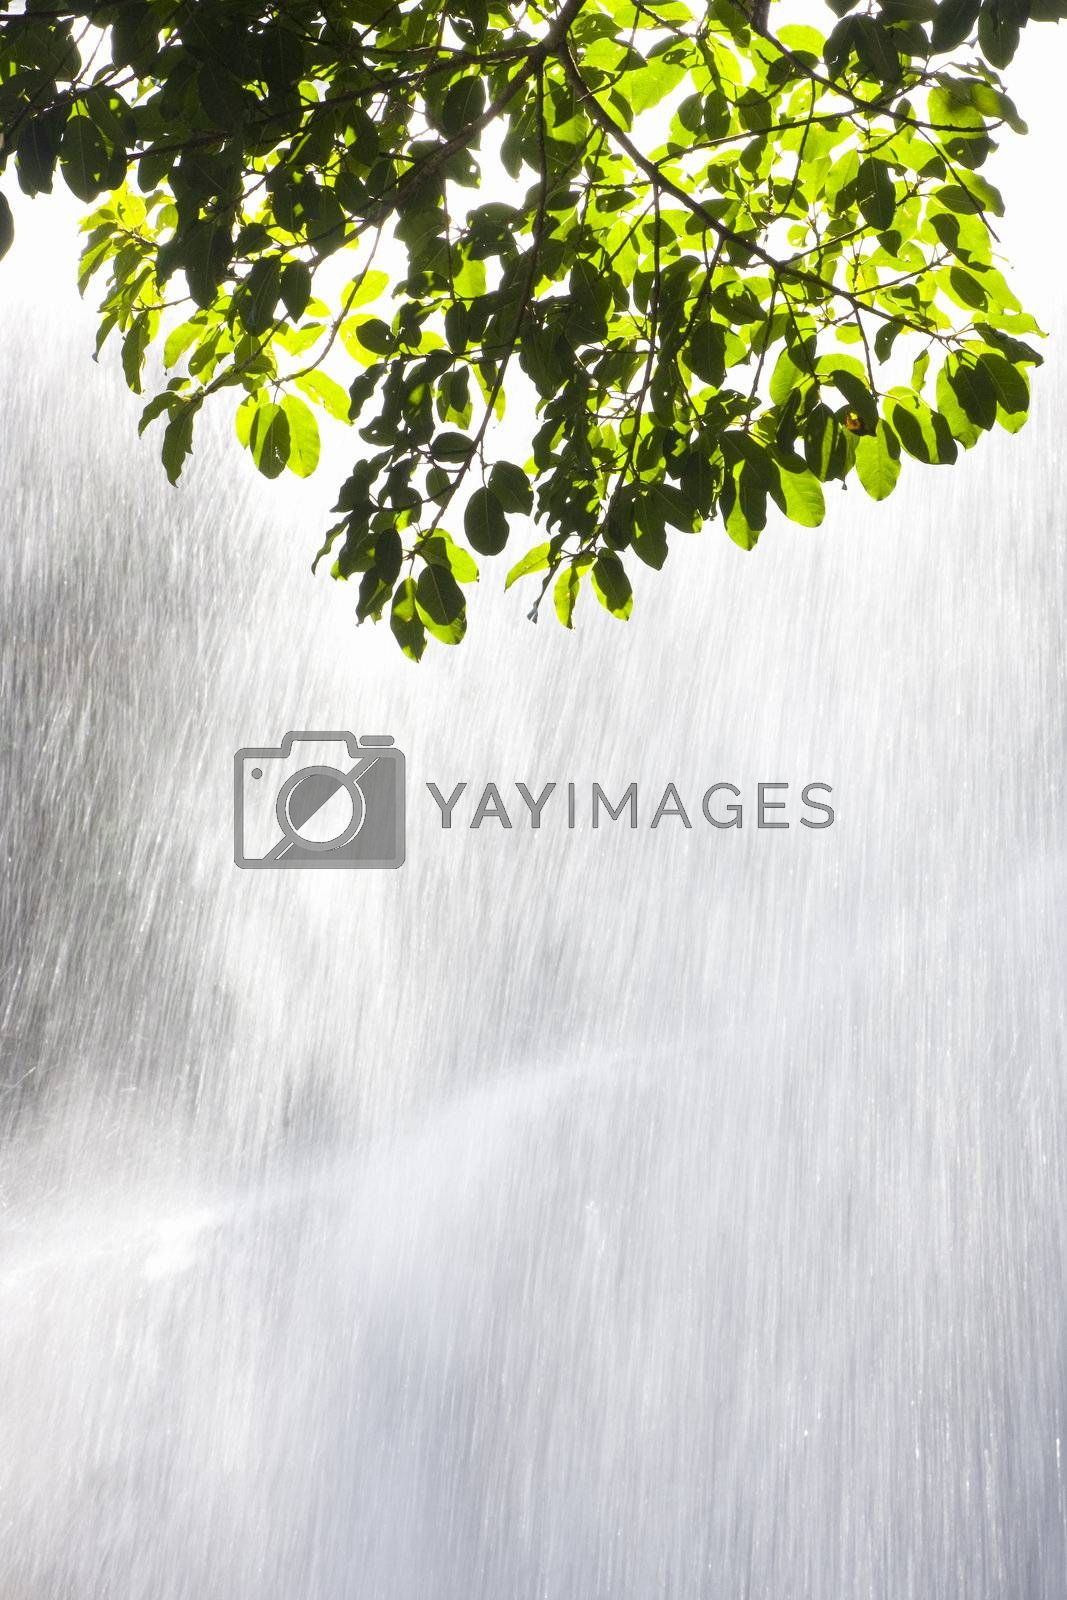 Sunlight on green leaves in front of a waterfall